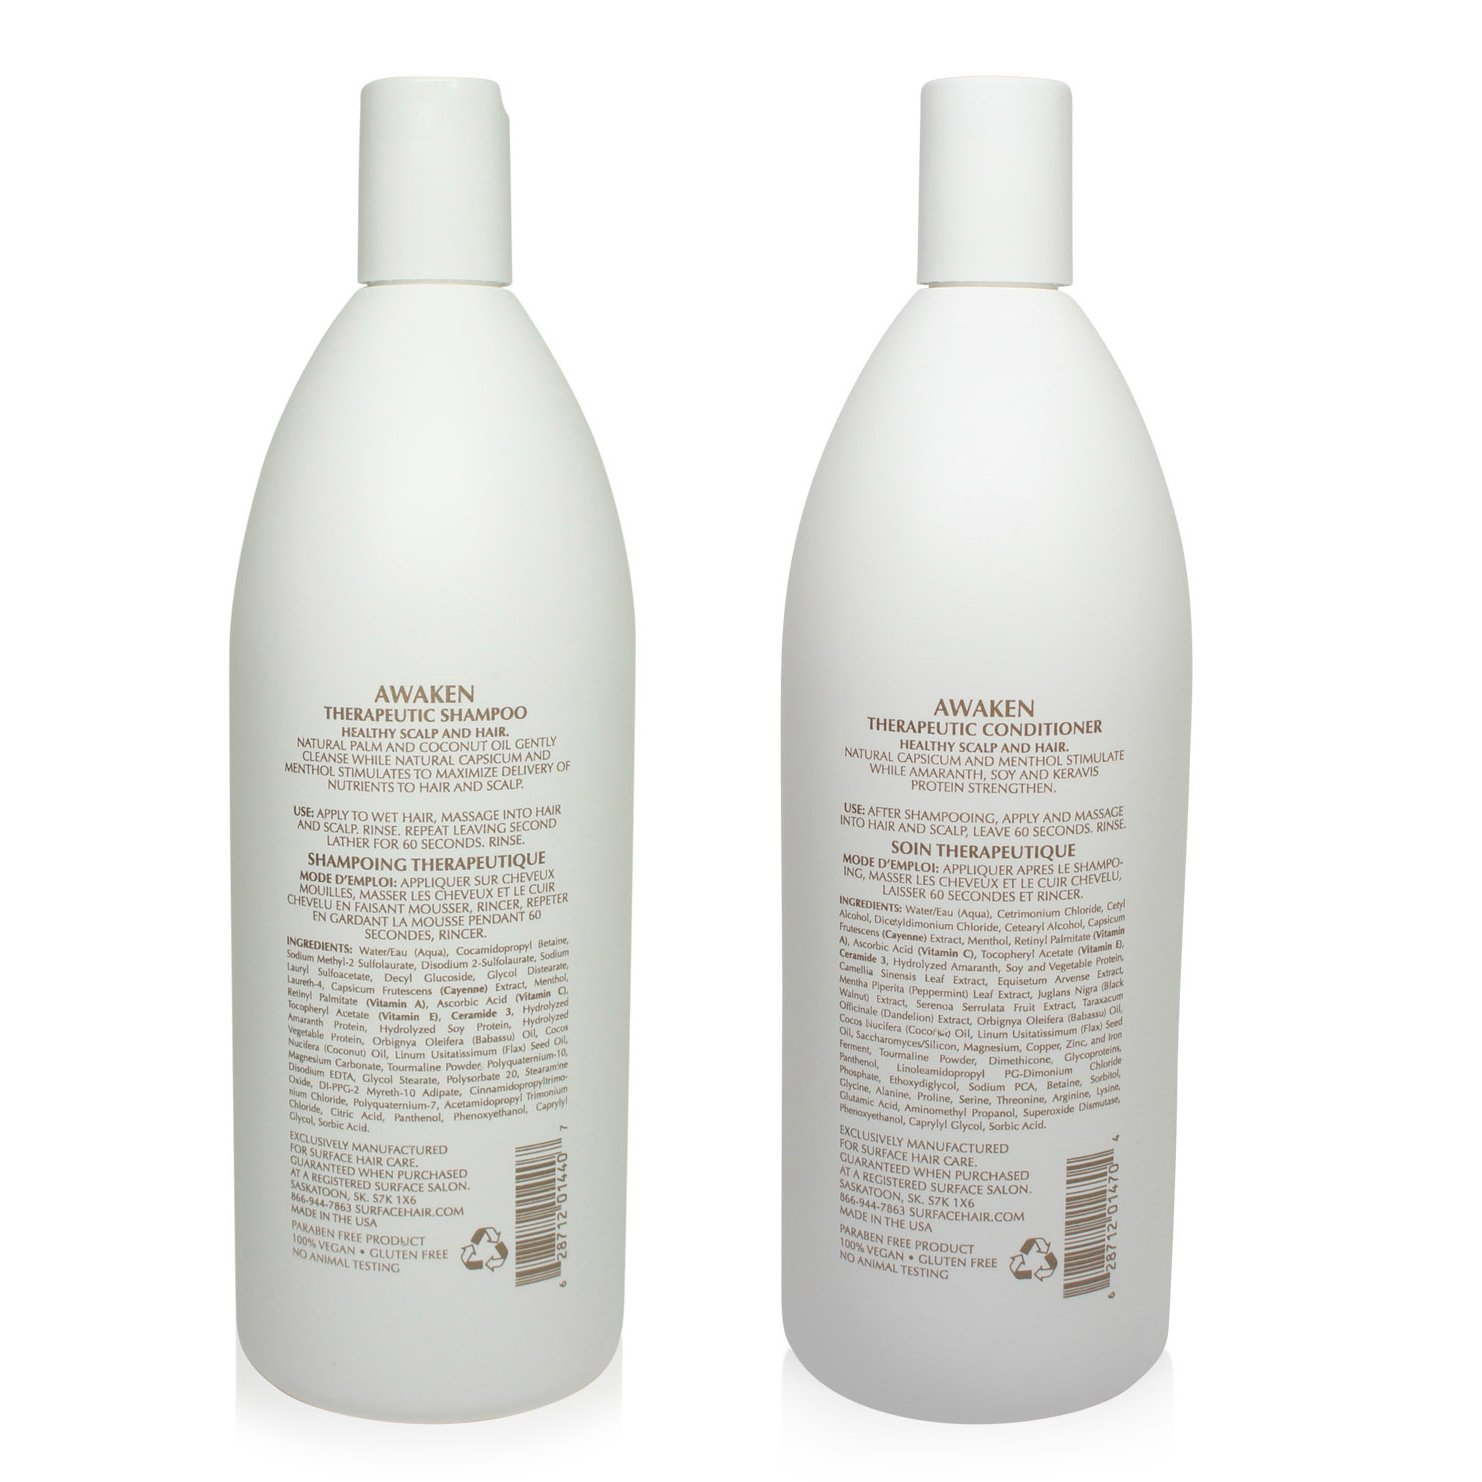 Surface Awaken Therapeutic Shampoo & Conditioner Duo - 1 Liter Bottles by SURFACE (Image #2)